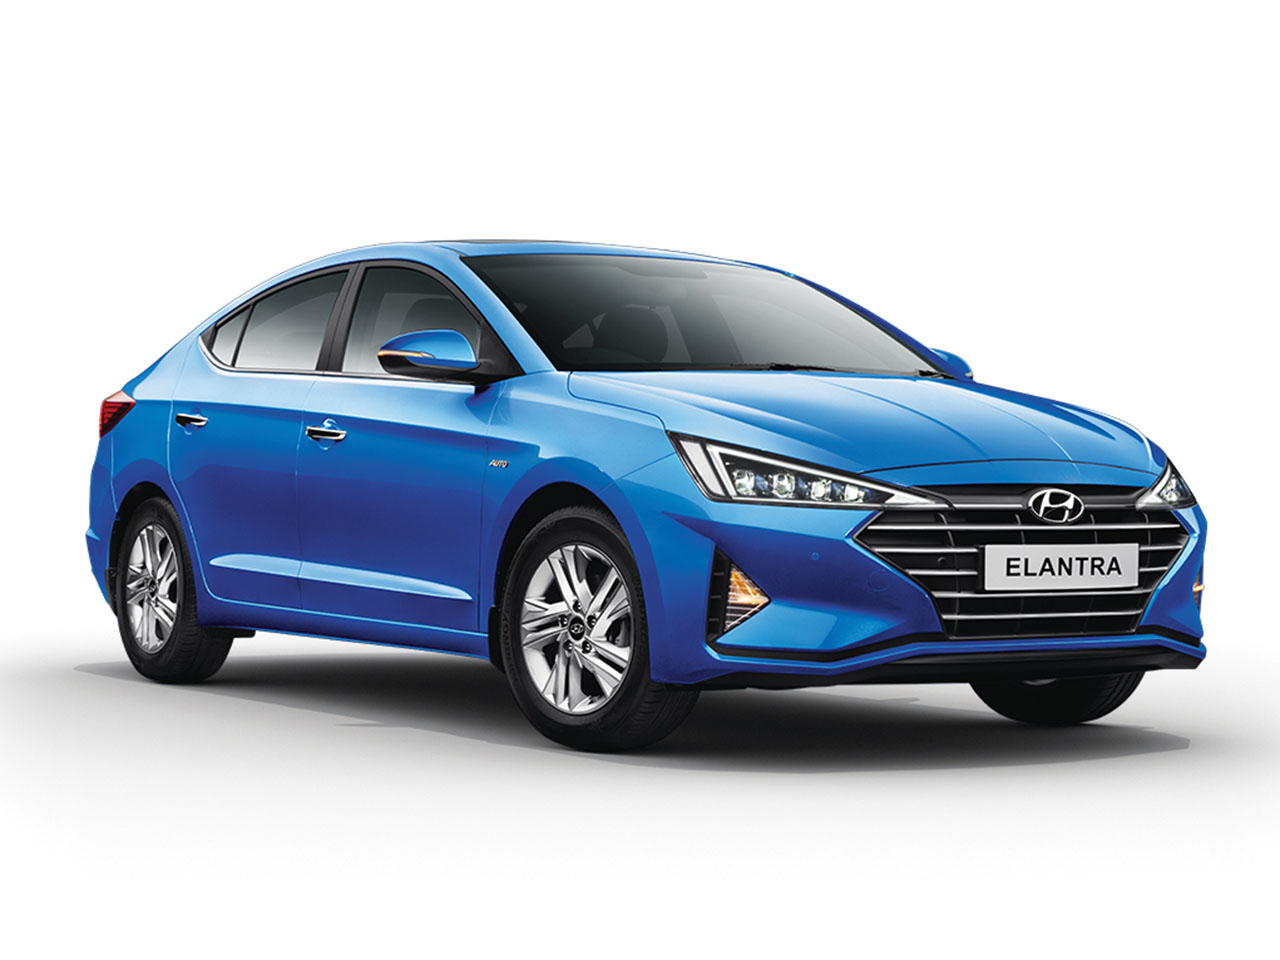 Hyundai Elantra BS6 diesel model launched – Prices start at Rs 18.70 lakh